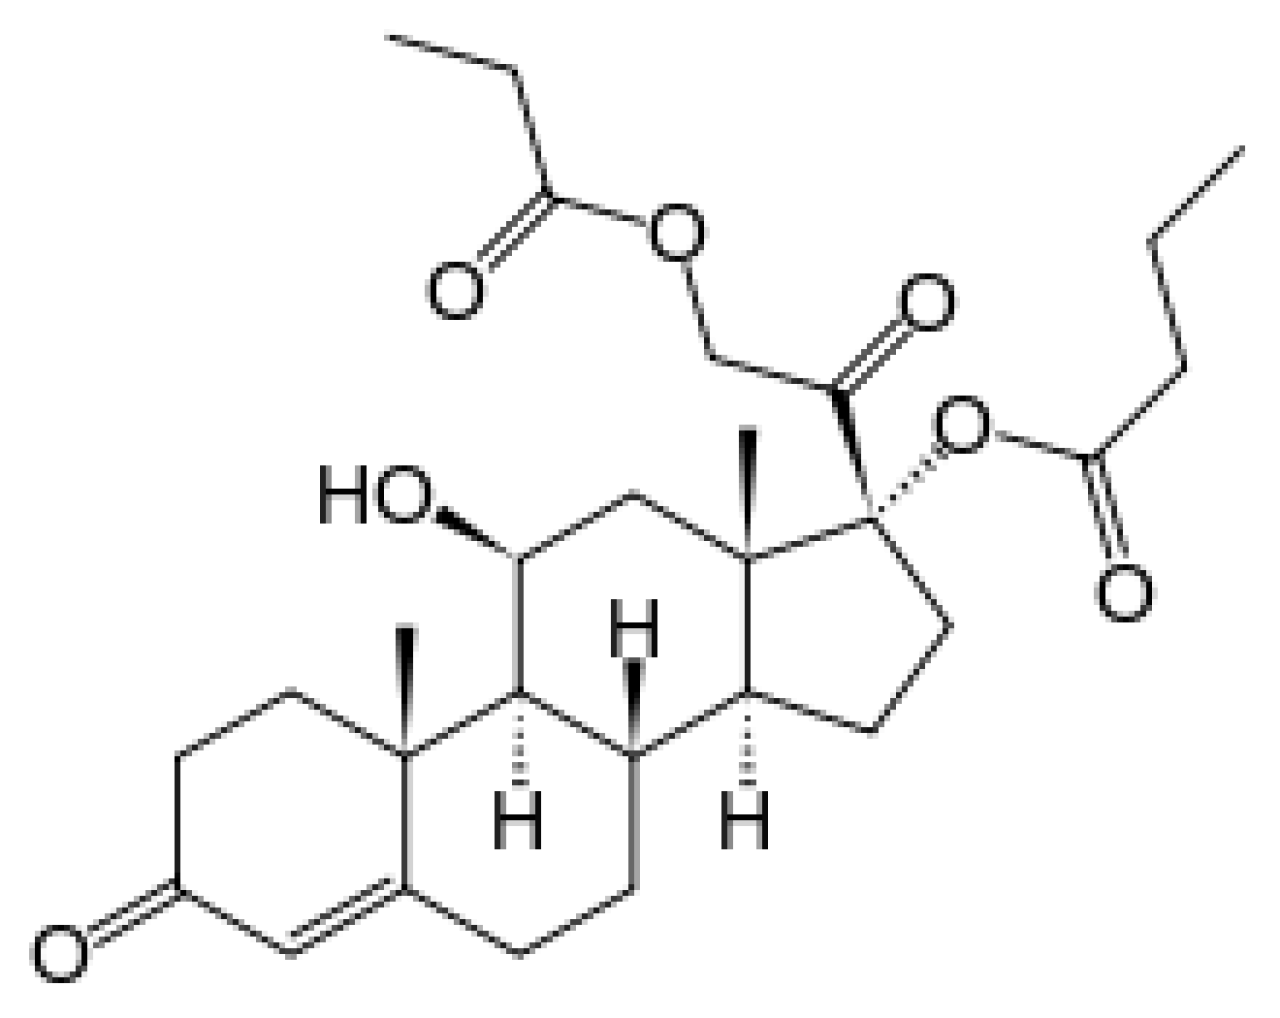 hydrocortisone-buteprate-chemical-structure